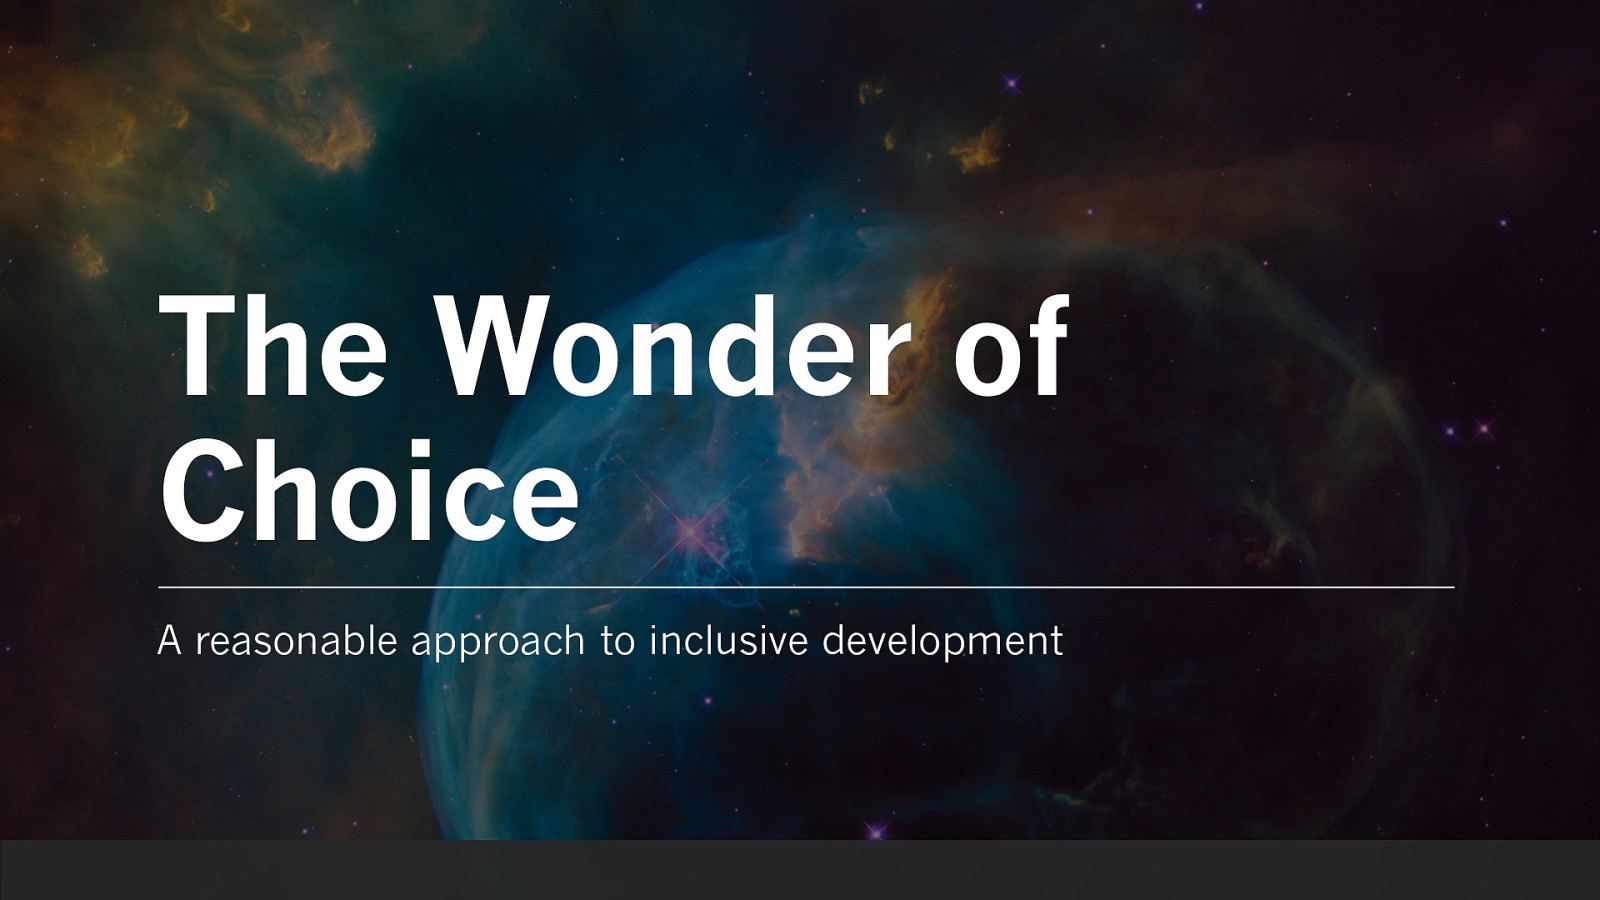 The Wonder of Choice: A reasonable approach to inclusive development